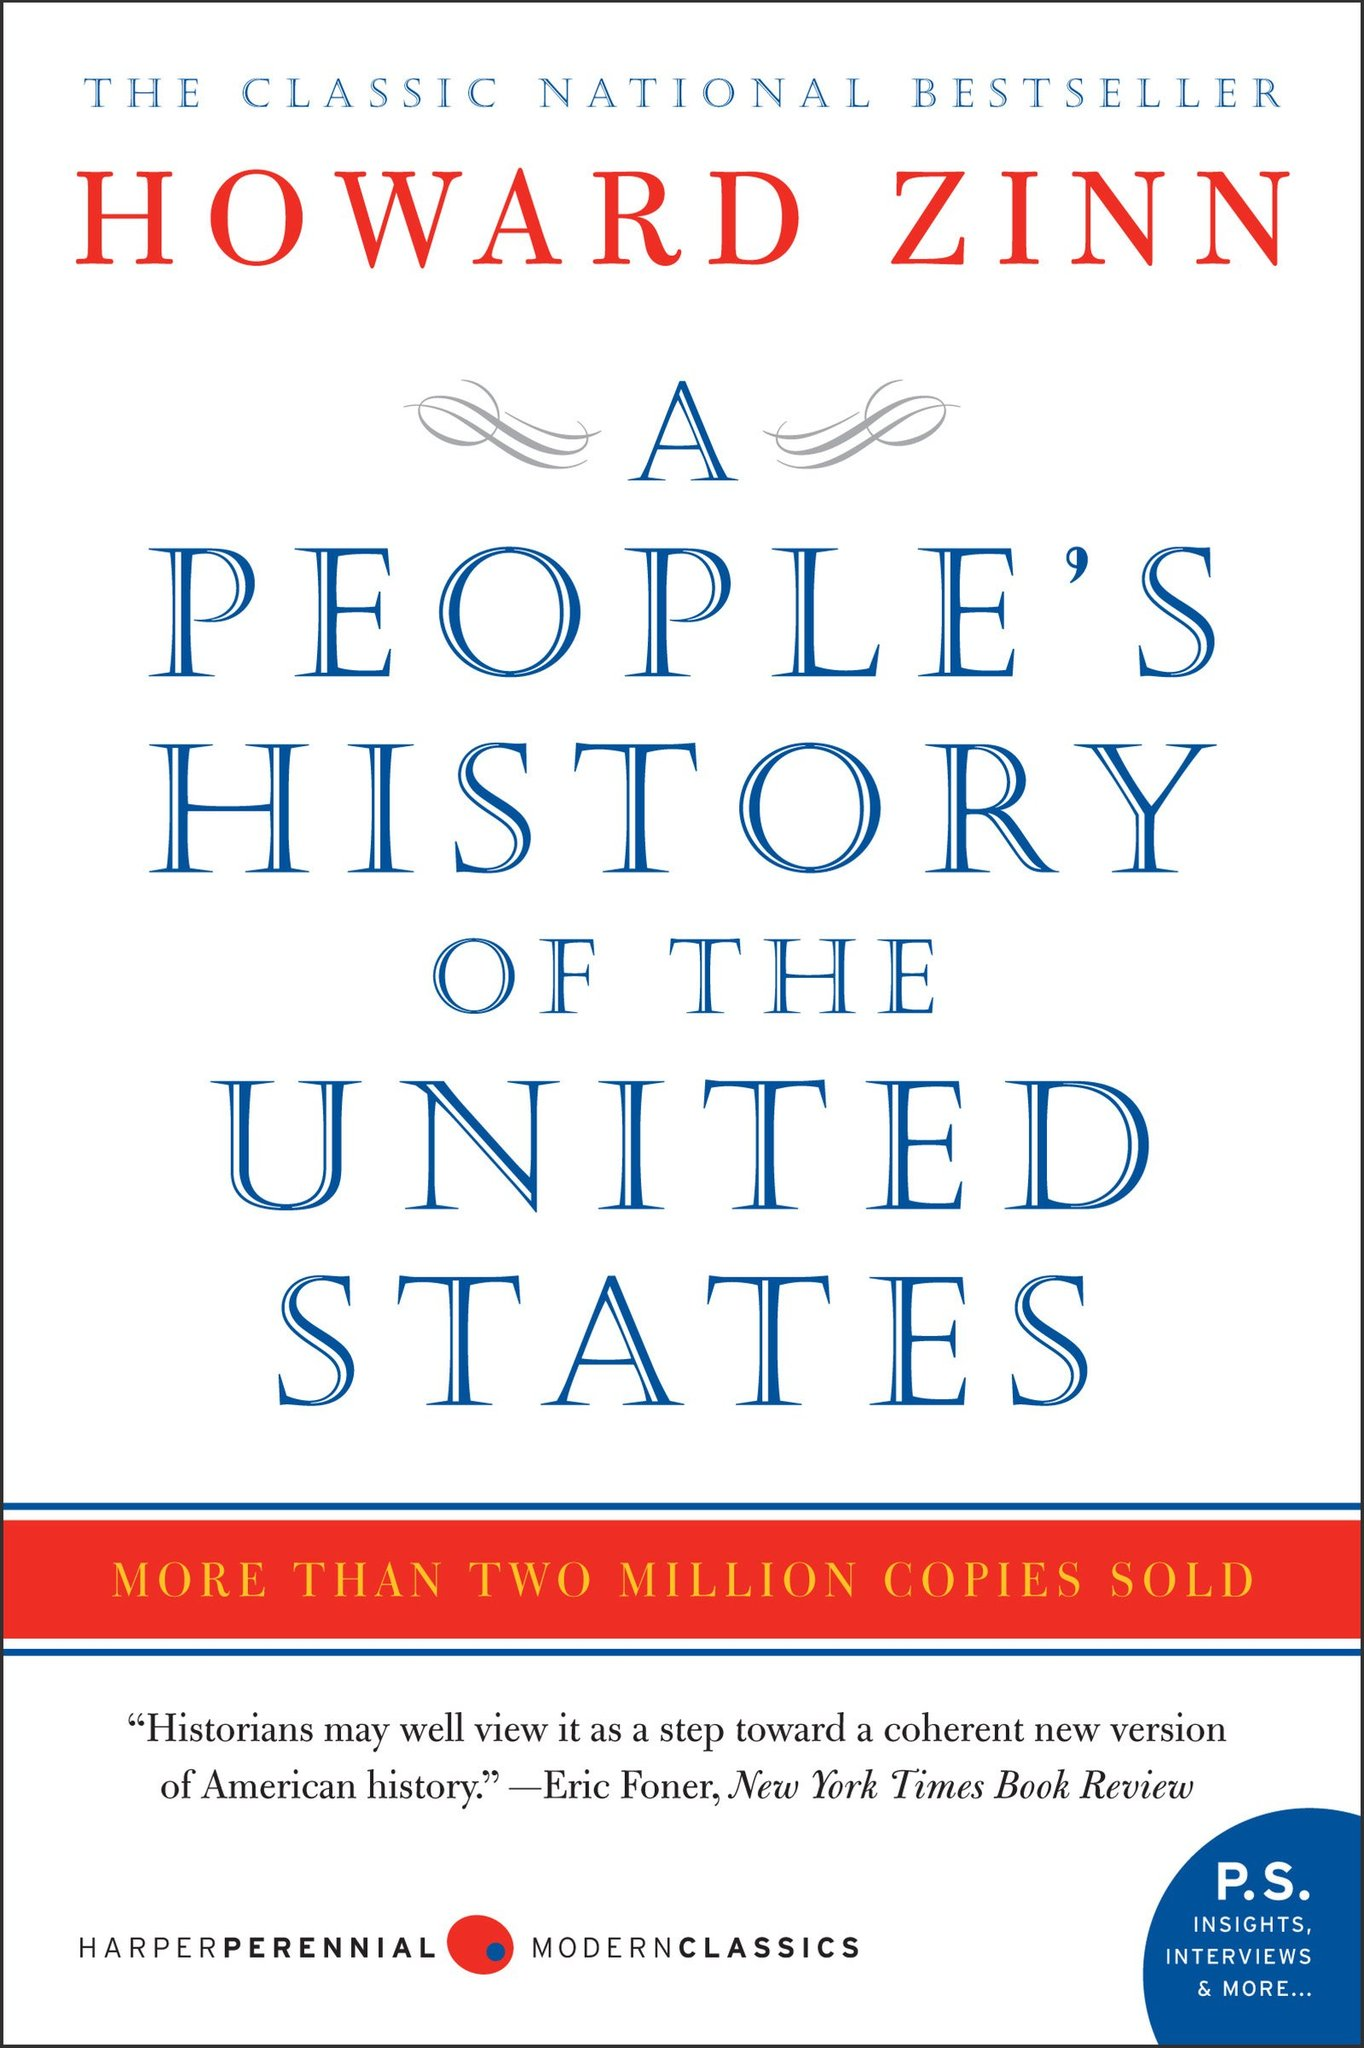 A-Peoples-History-of-the-United-States-Book-Cover.jpg